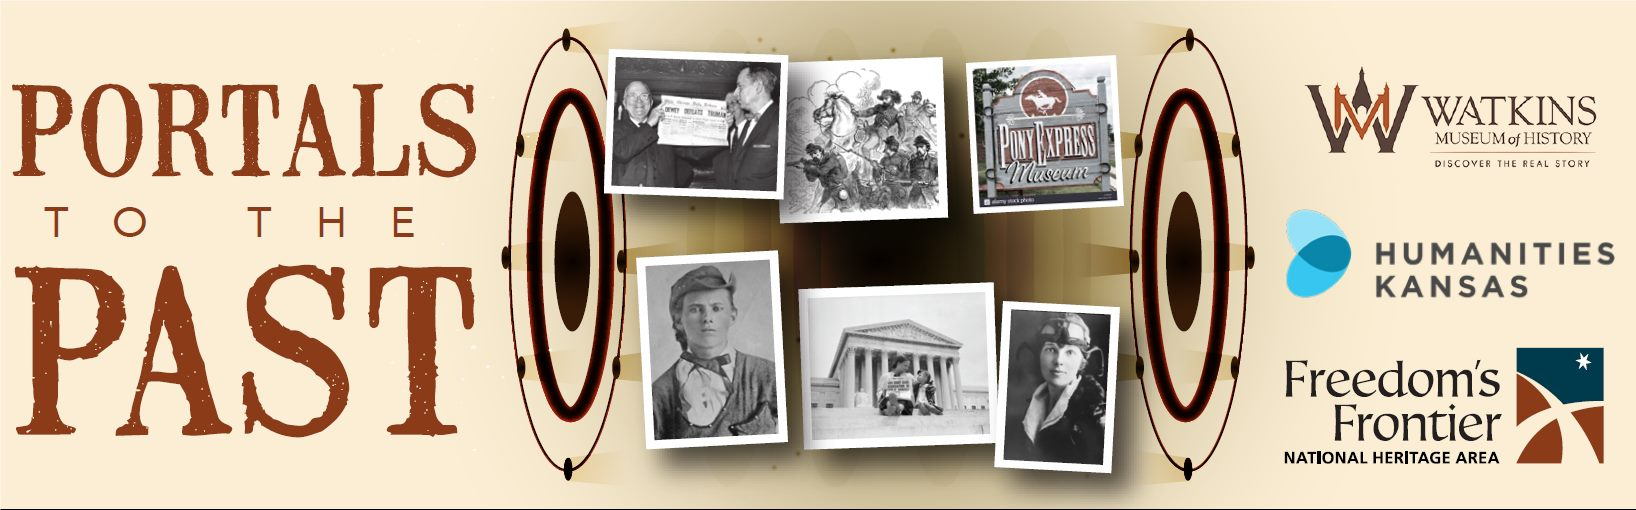 Online Program - Meet Amelia Earhart: A Portals to the Past Event image